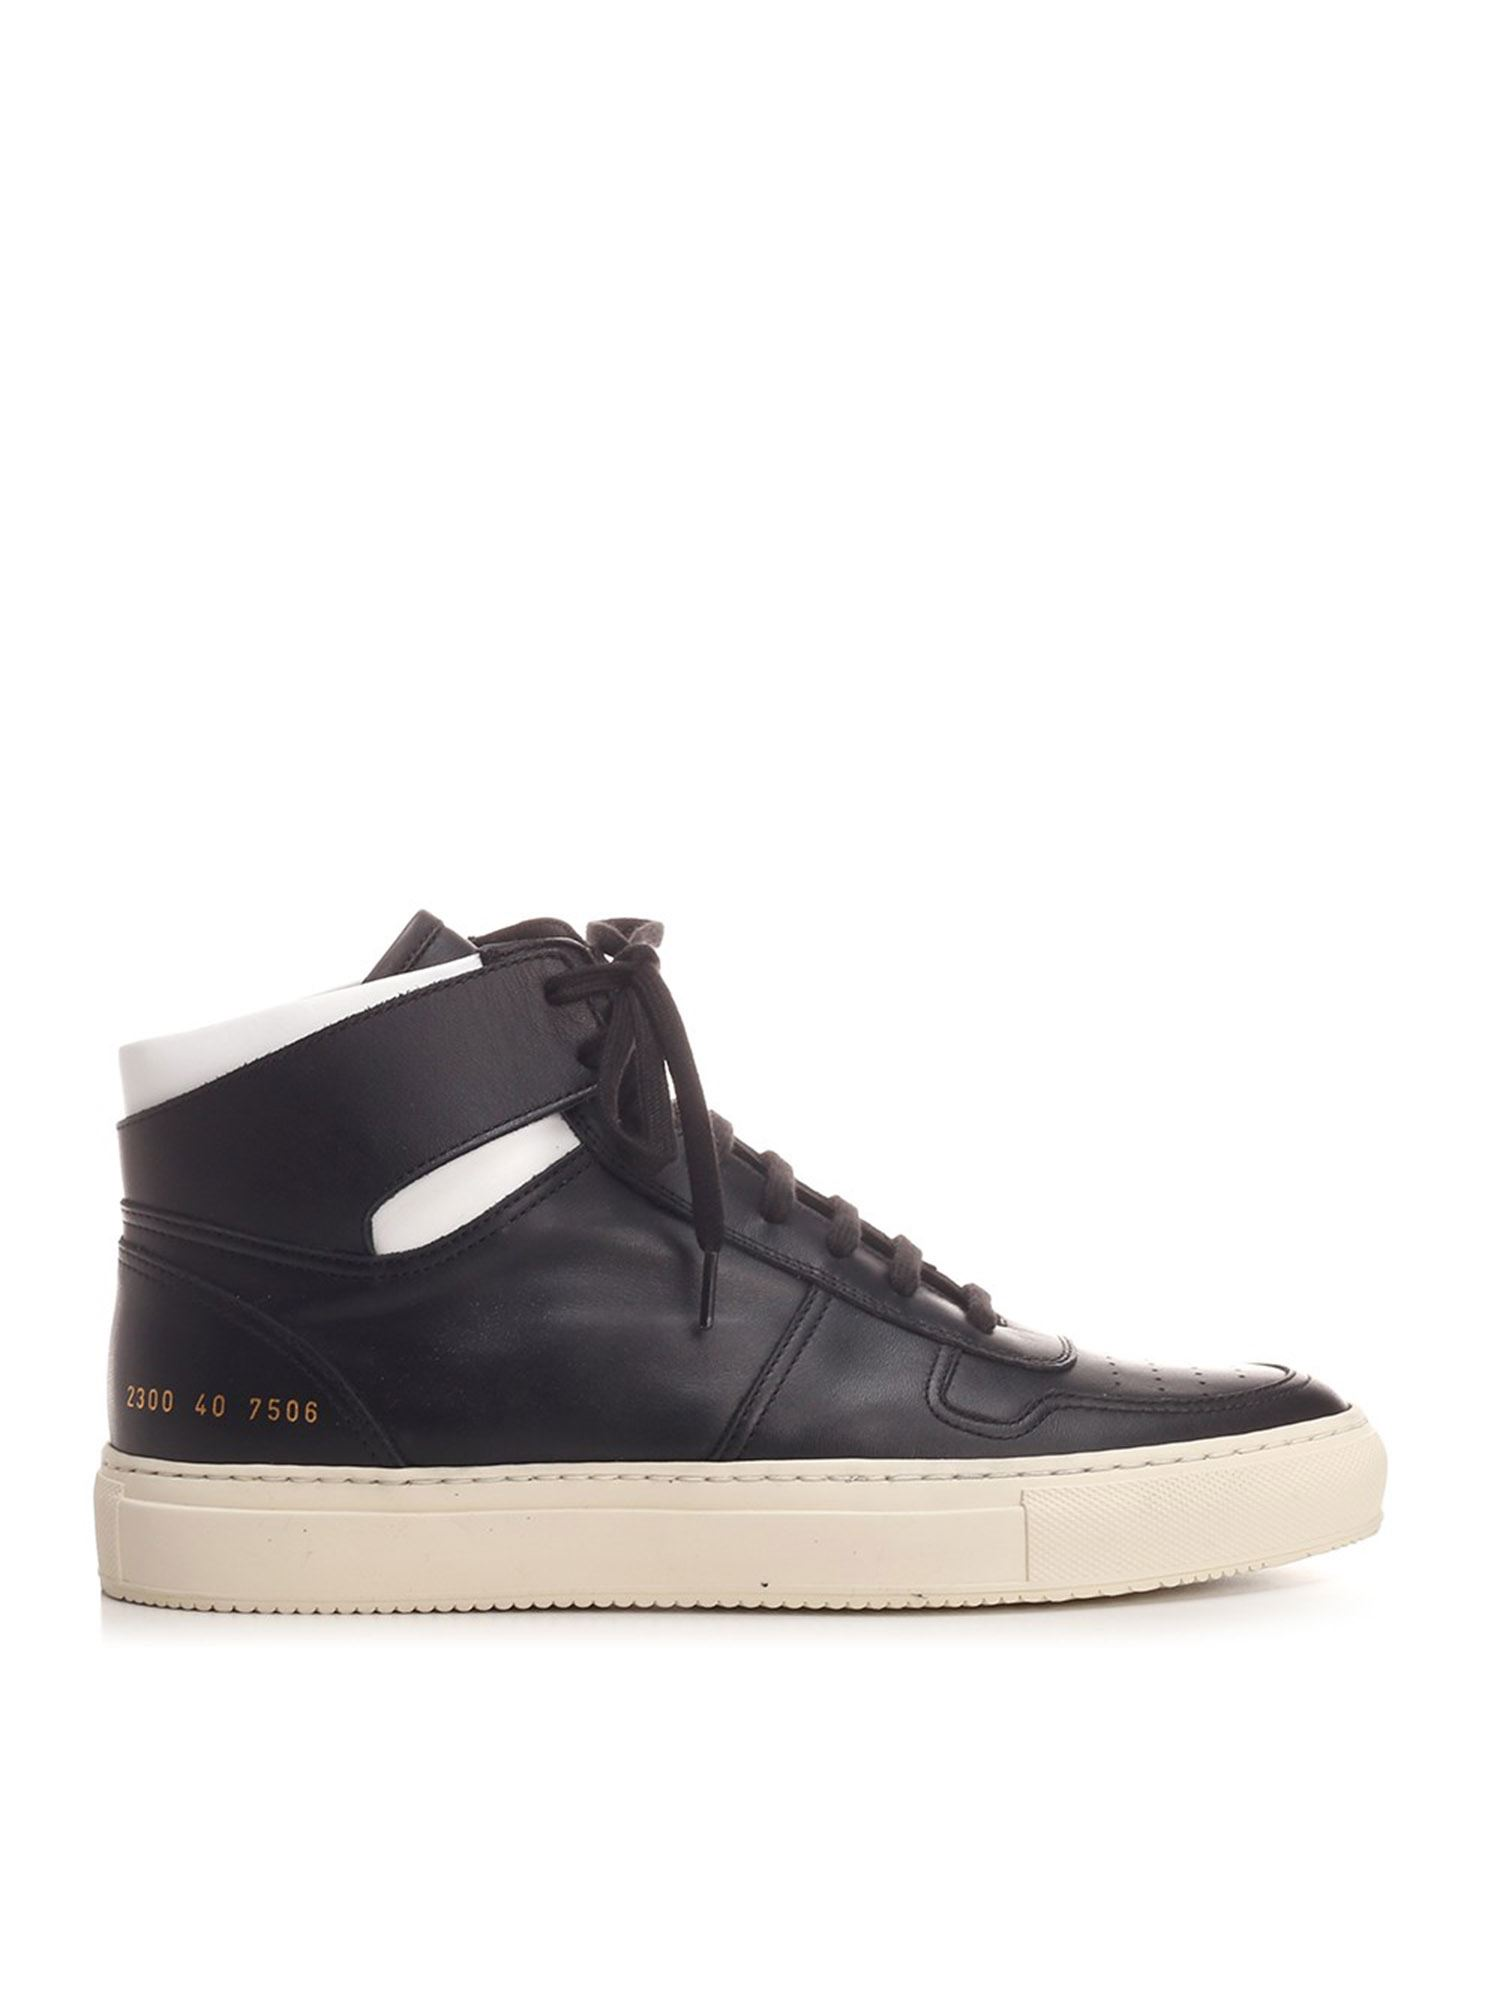 Common Projects Leathers BBALL HIGH SNEAKERS IN BLACK AND WHITE